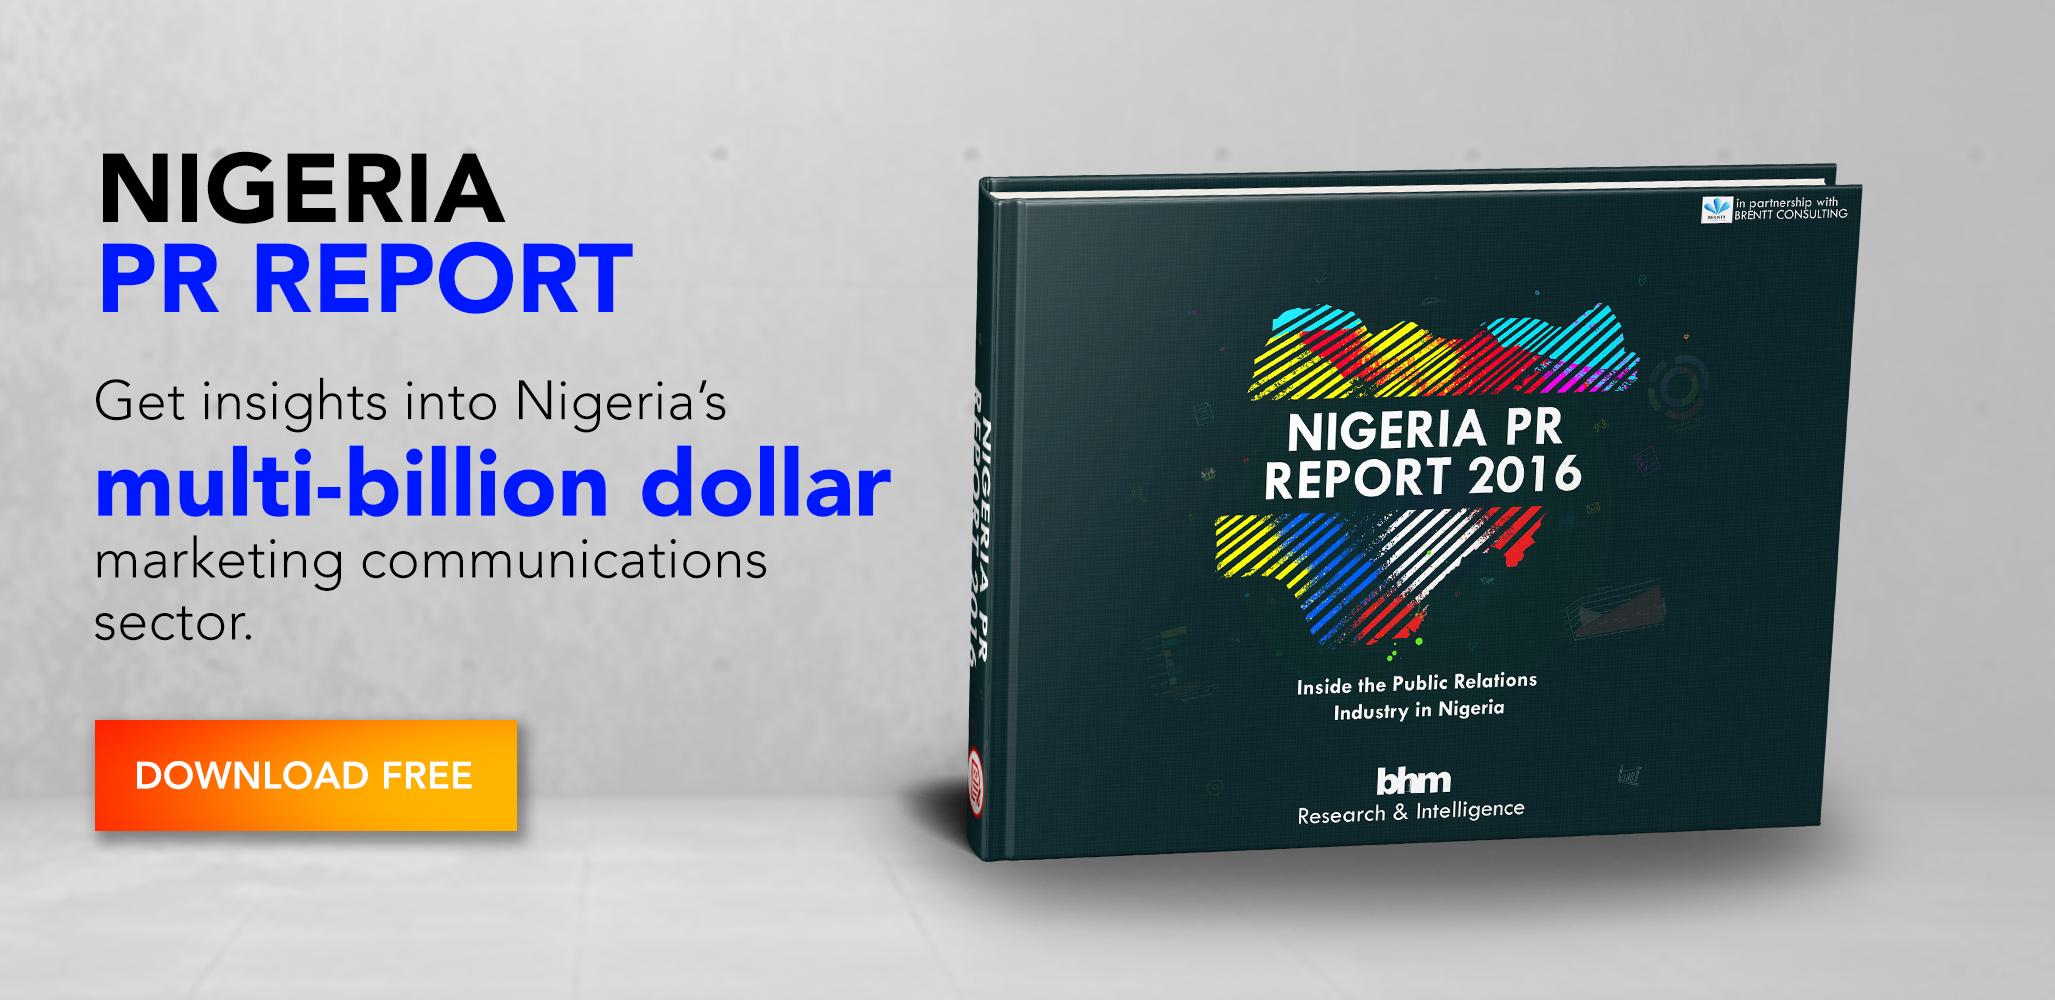 Nigeria PR Industry: 13 Quick Insights From The Nigeria PR Report 2016